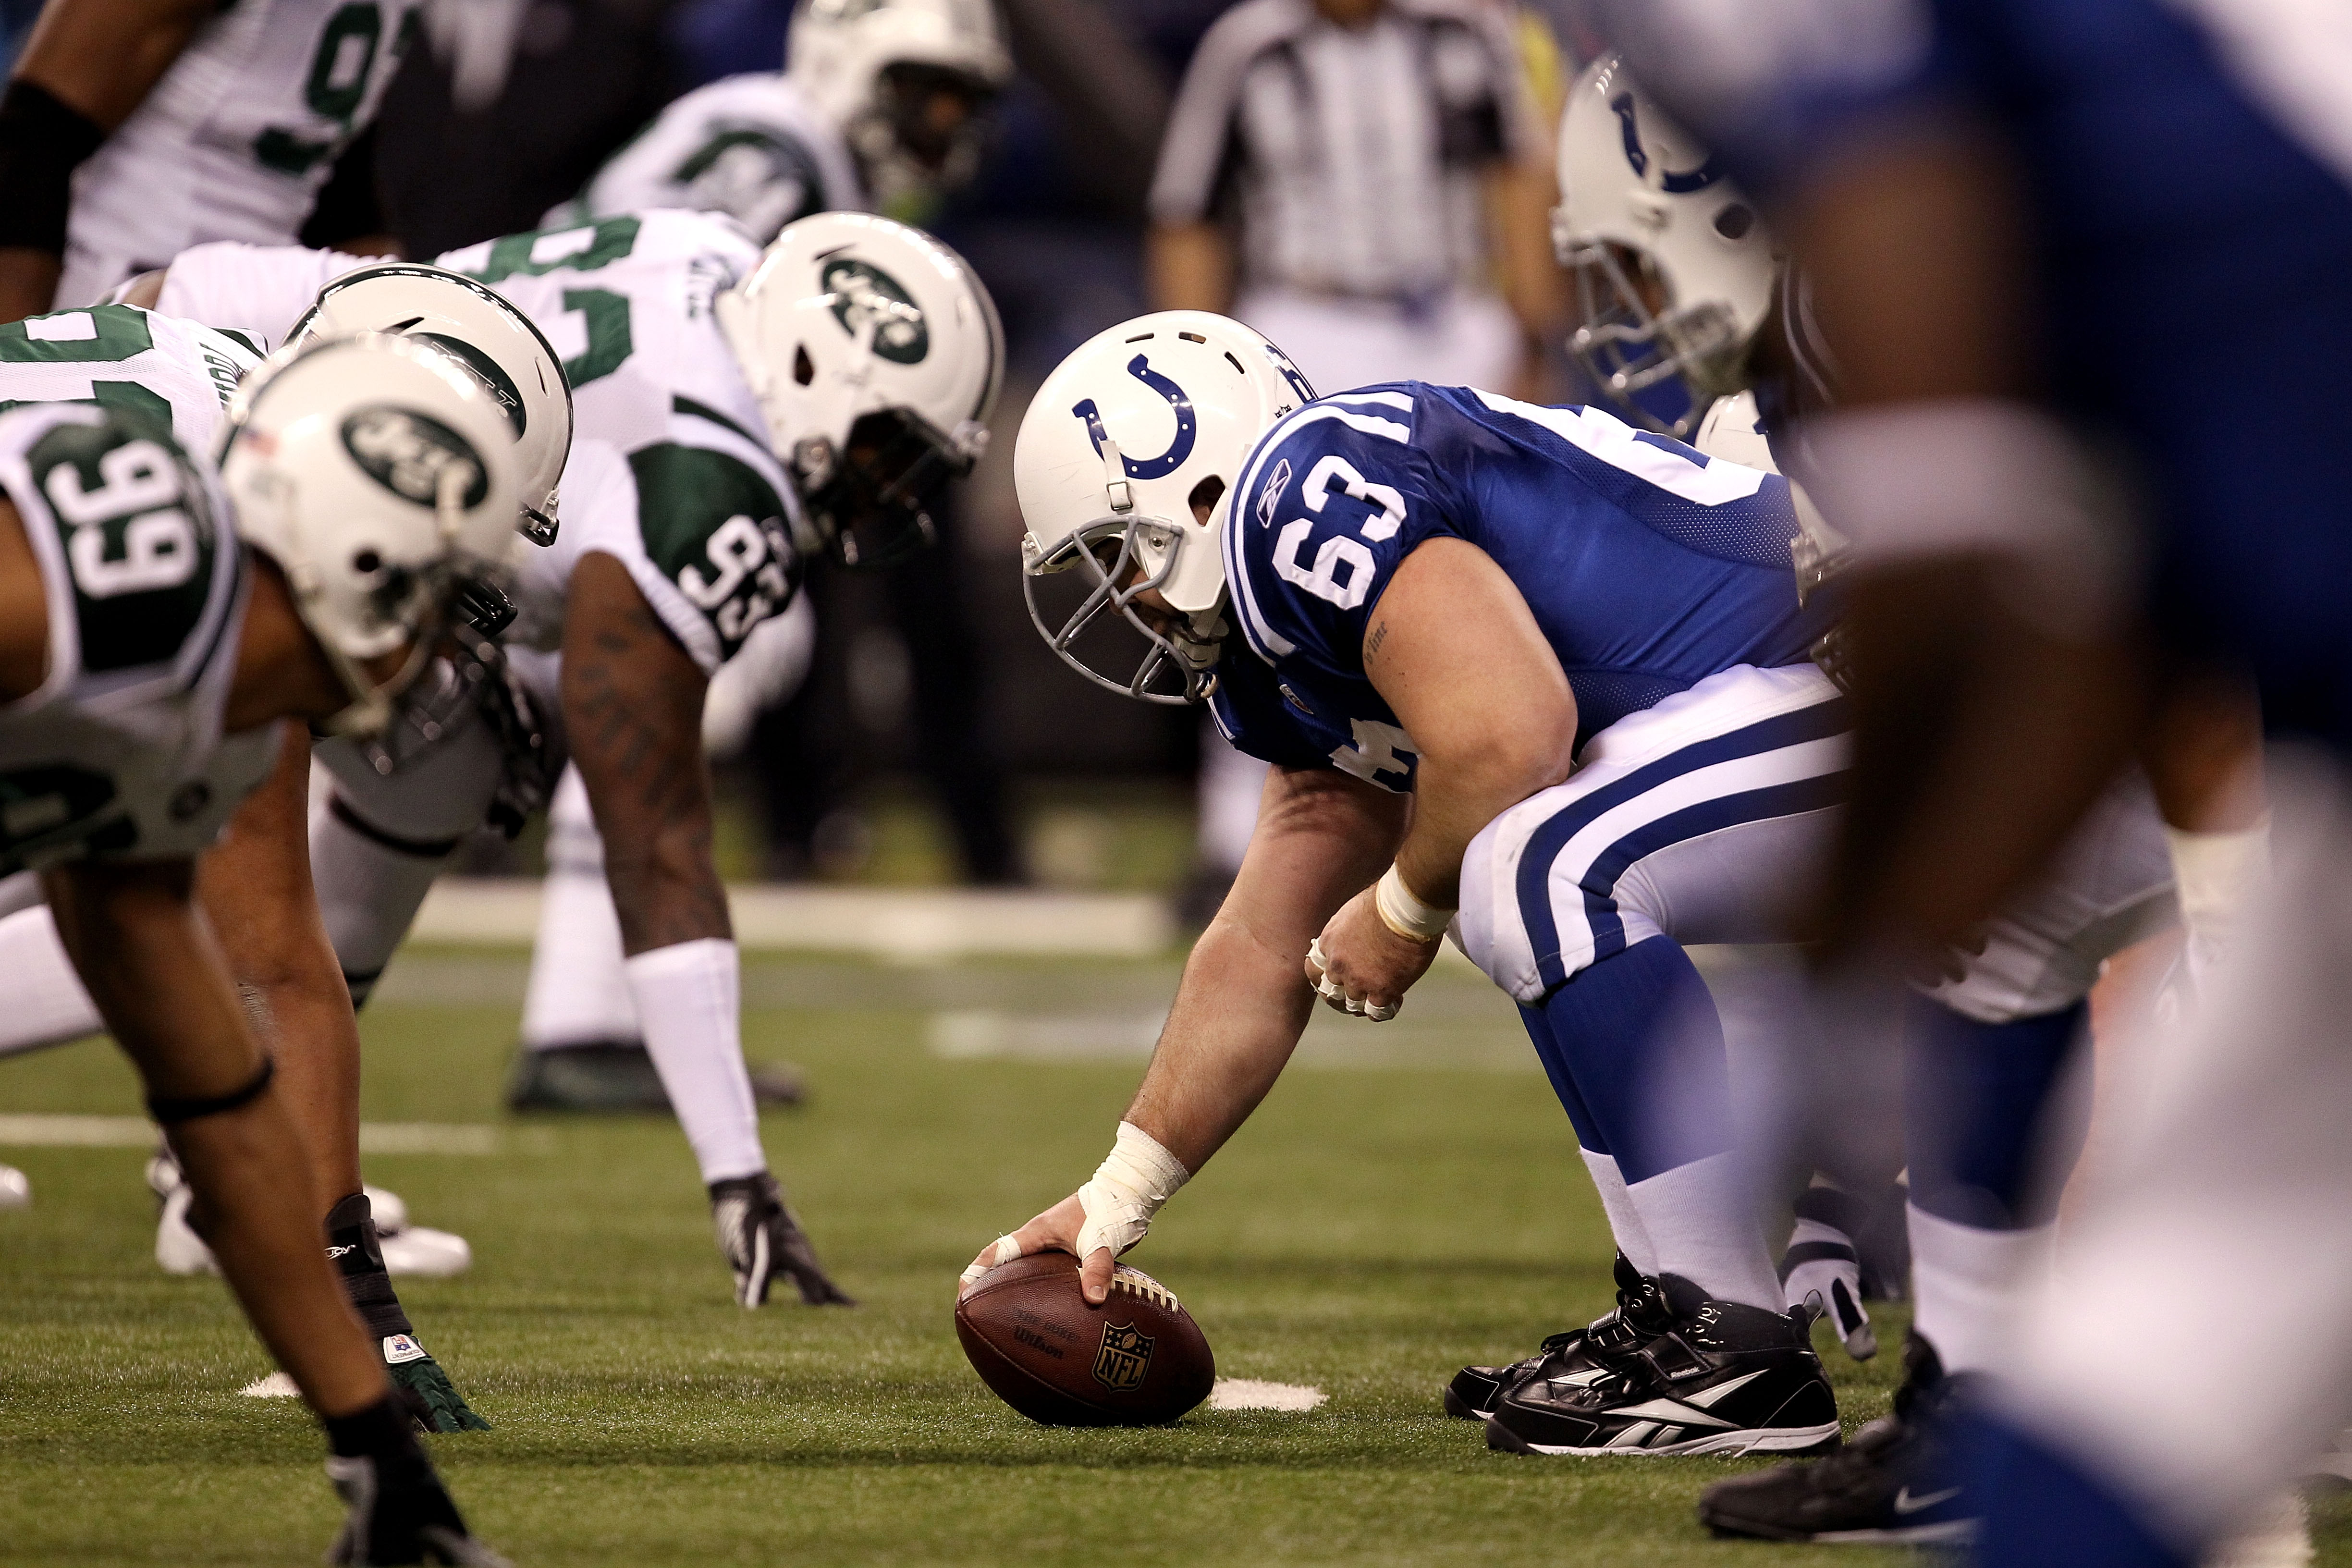 INDIANAPOLIS, IN - JANUARY 08:  Center Jeff Saturday #63 of the Indianapolis Colts readies to snap the ball against the New York Jets during their 2011 AFC wild card playoff game at Lucas Oil Stadium on January 8, 2011 in Indianapolis, Indiana. The Jets w